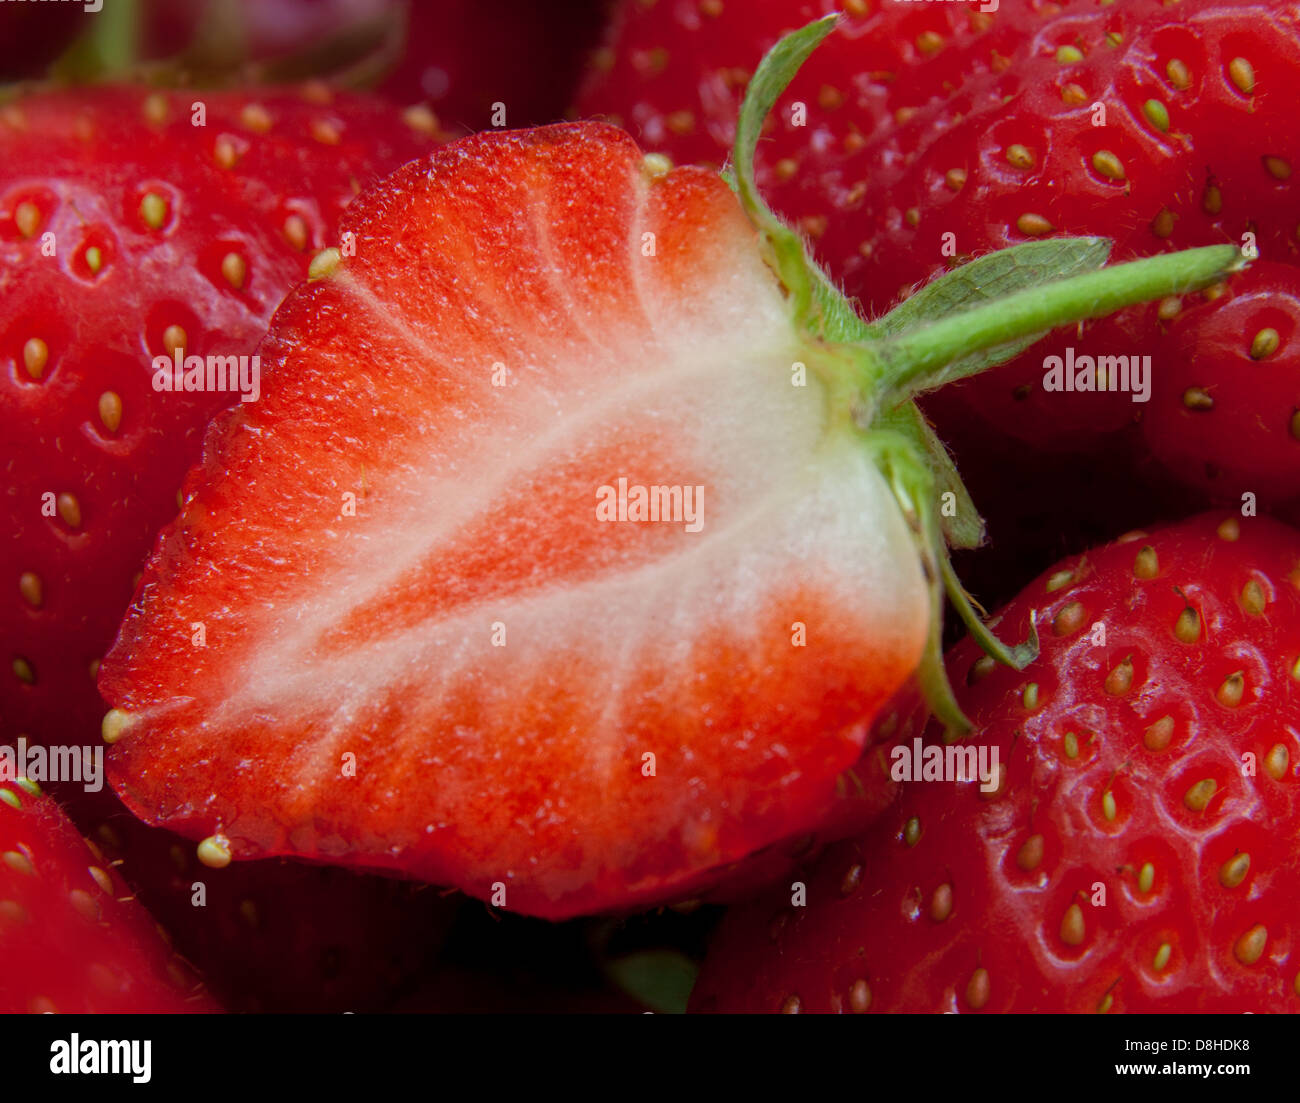 British Strawberries such a brilliant red summer fruit! - Stock Image